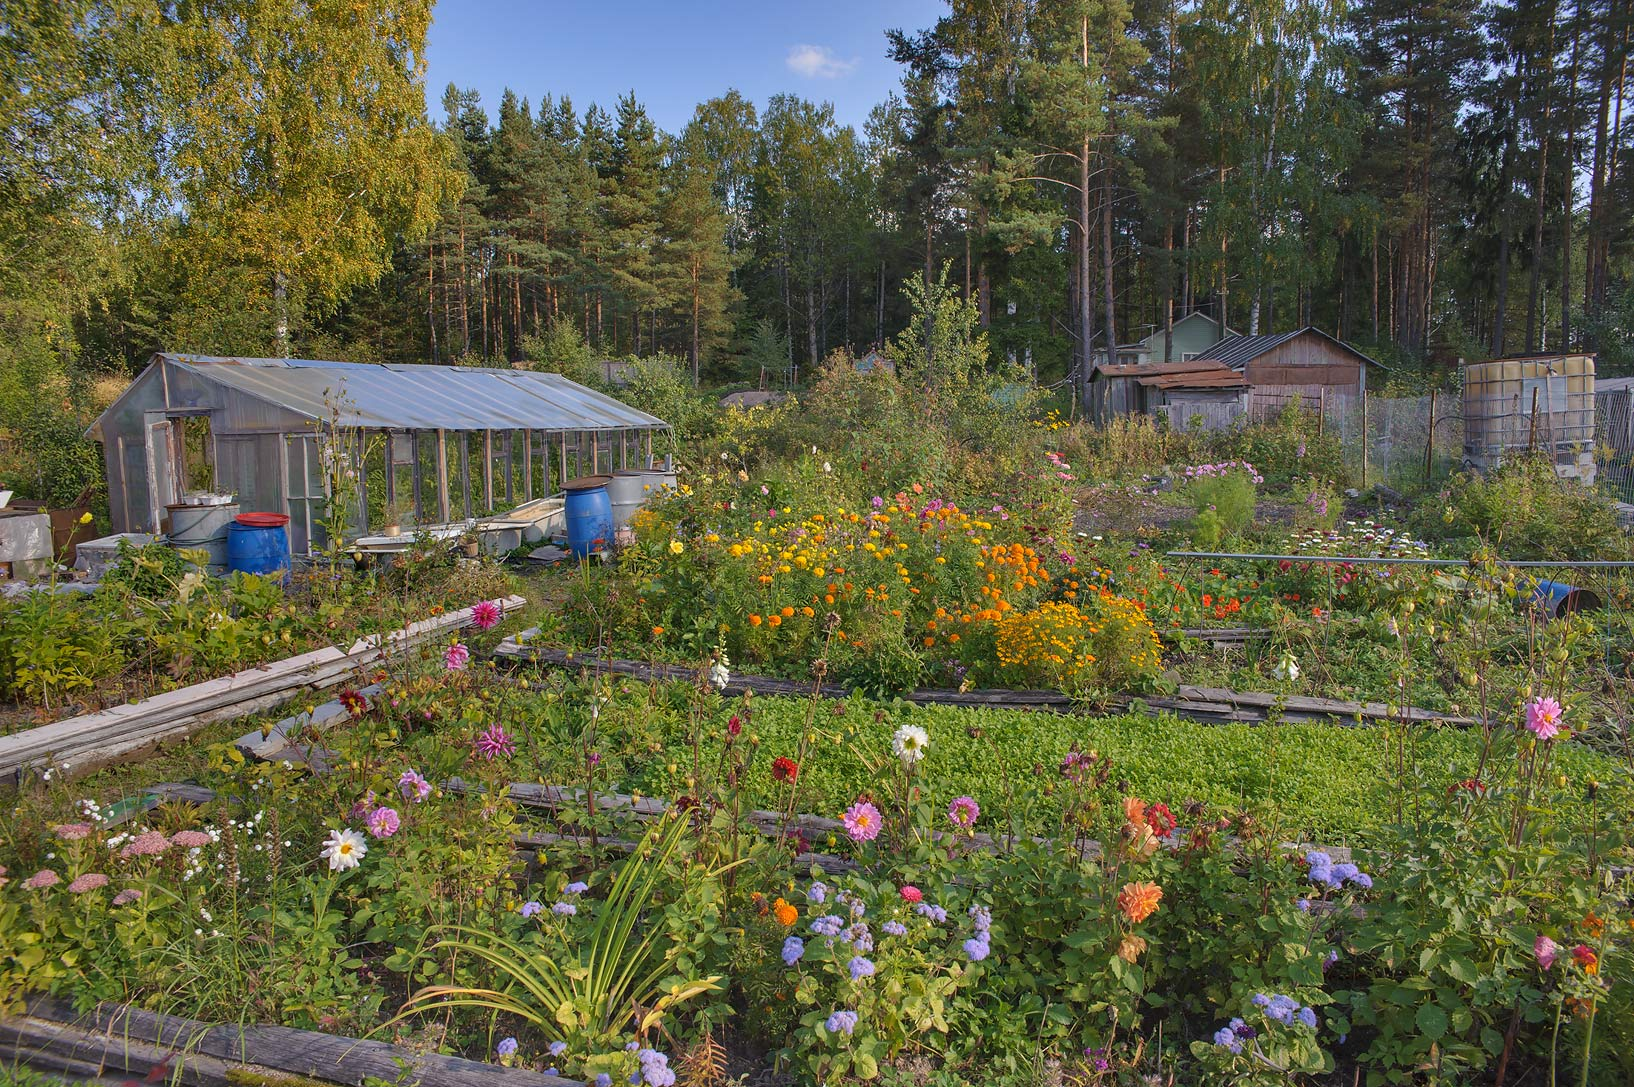 Vegetable gardens in north-west area of Monrepo (Mon Repos) Park. Vyborg, Russia